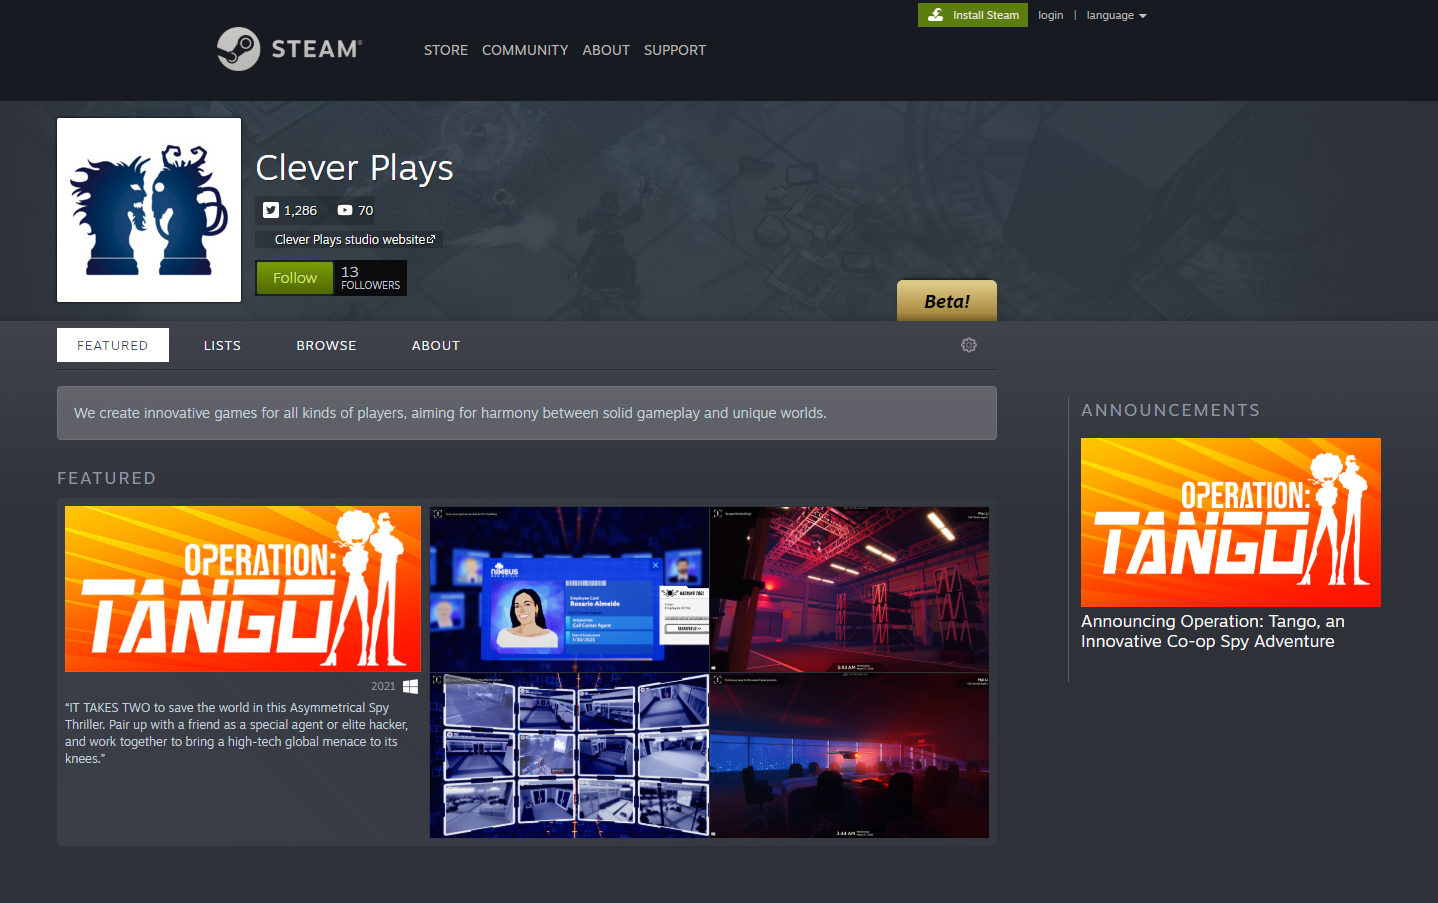 Clever Plays Steam Developer page